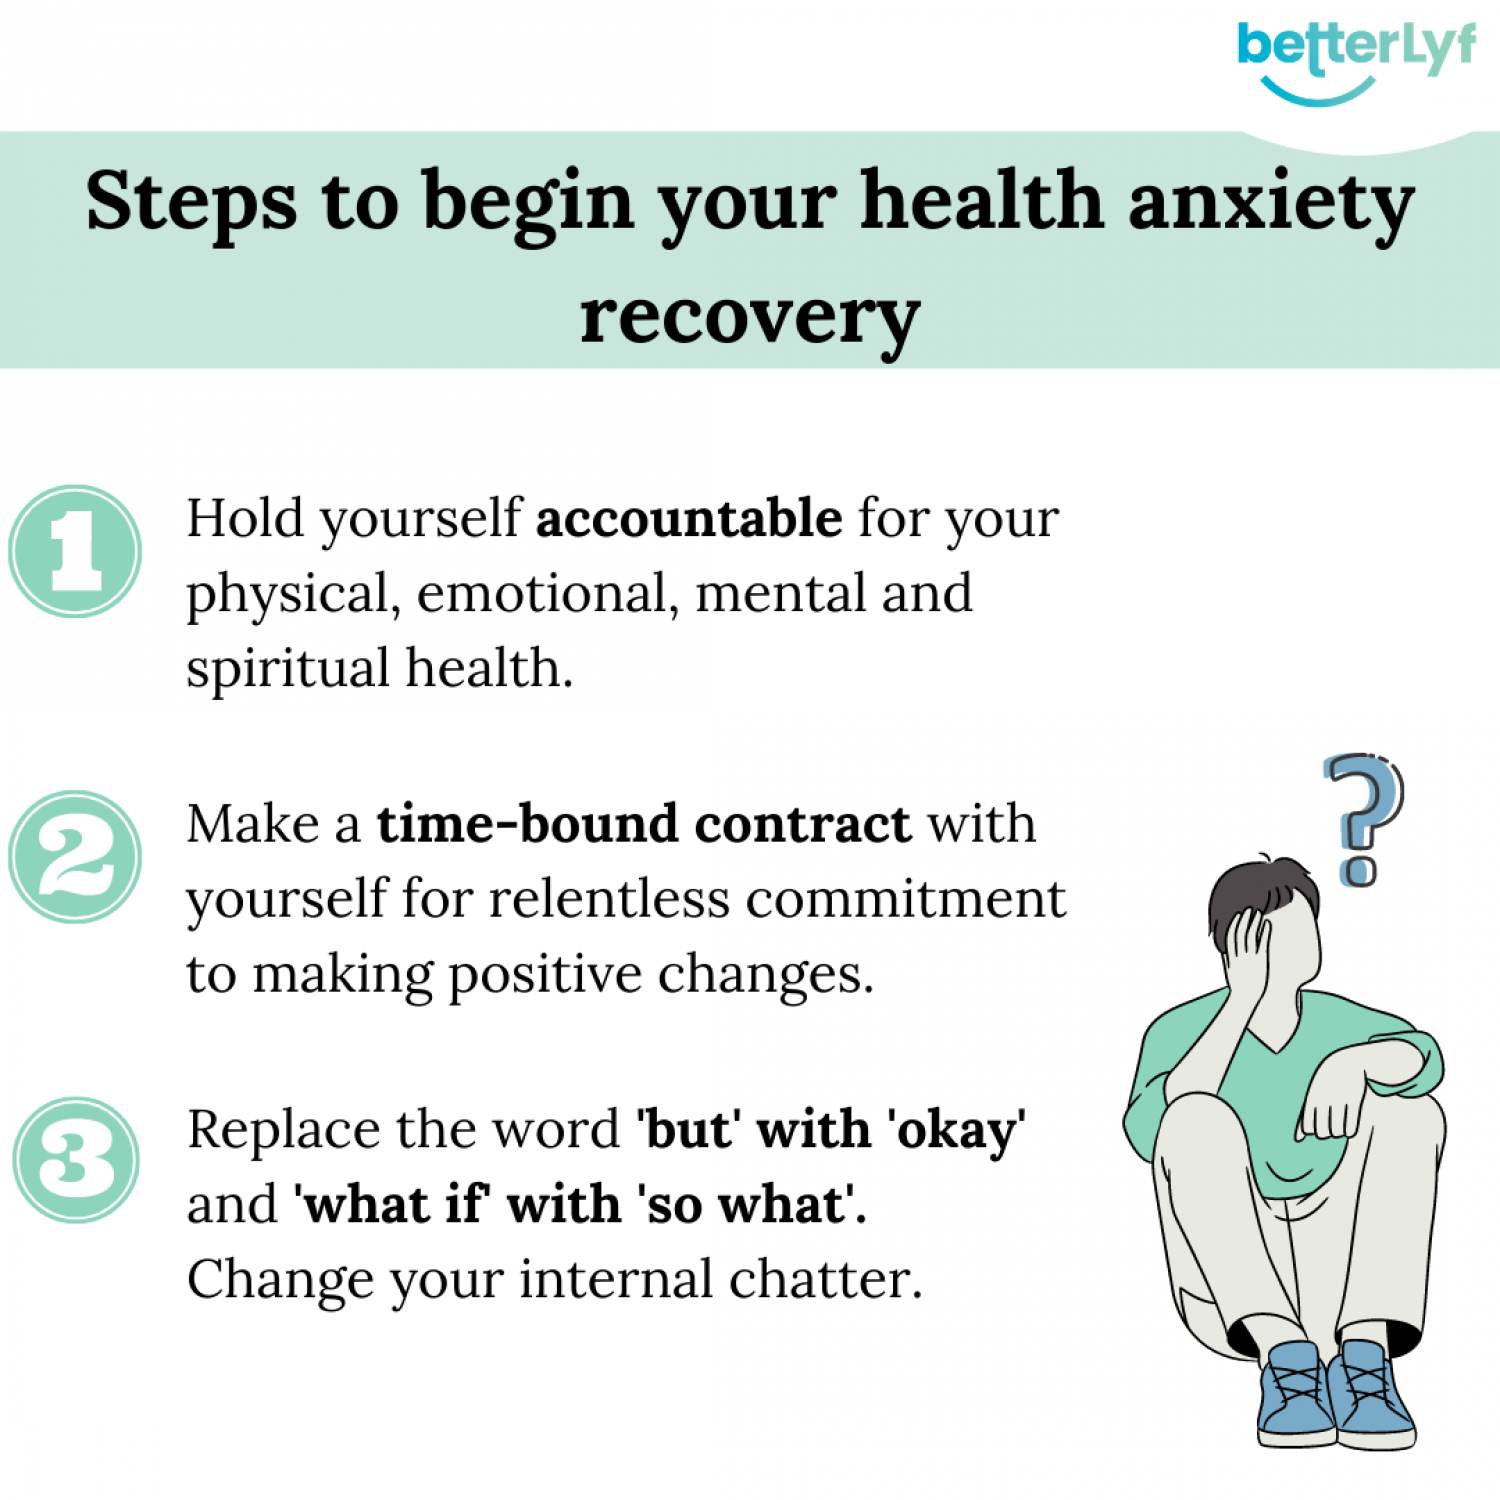 Overcome Health Anxiety - Online Counselling - BetterLYF Infographic